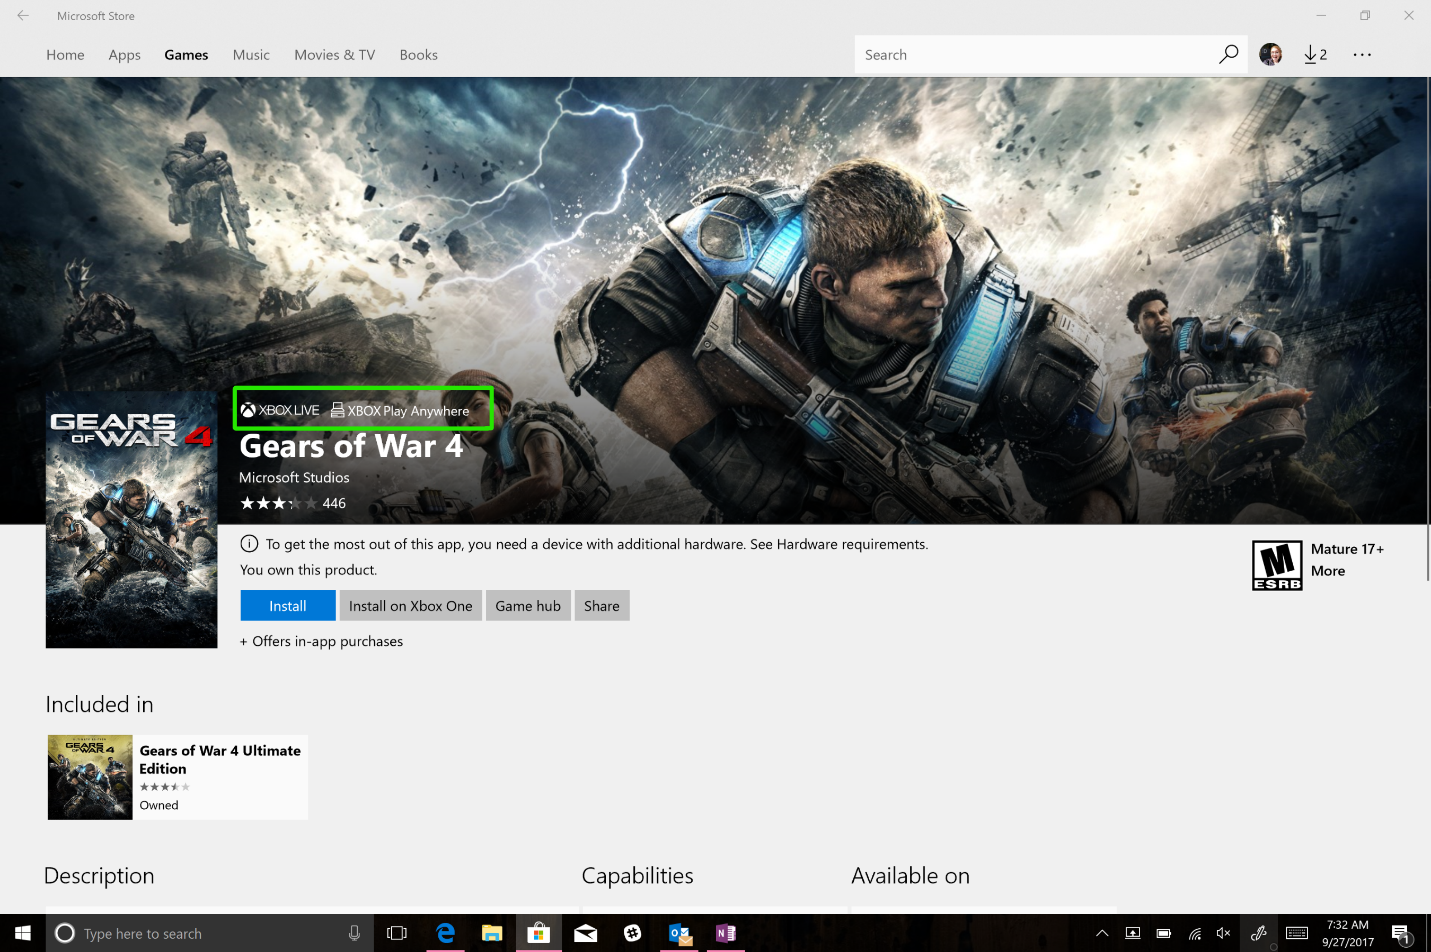 Gears of War 4 video game page in the Microsoft Store